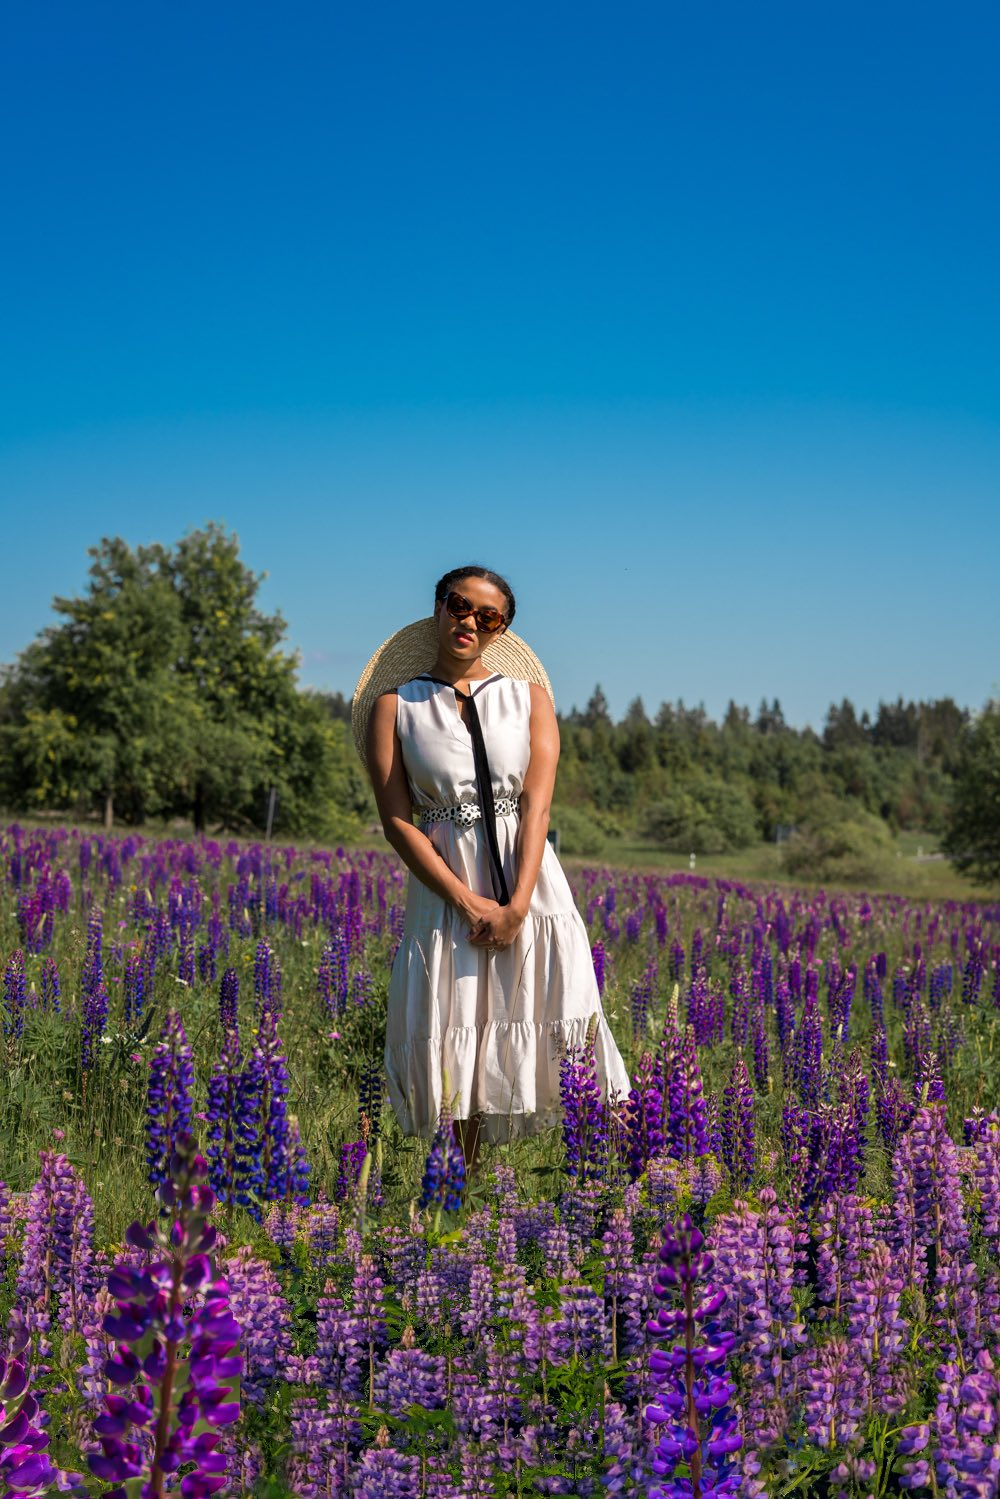 photo idea shooting in a flower field